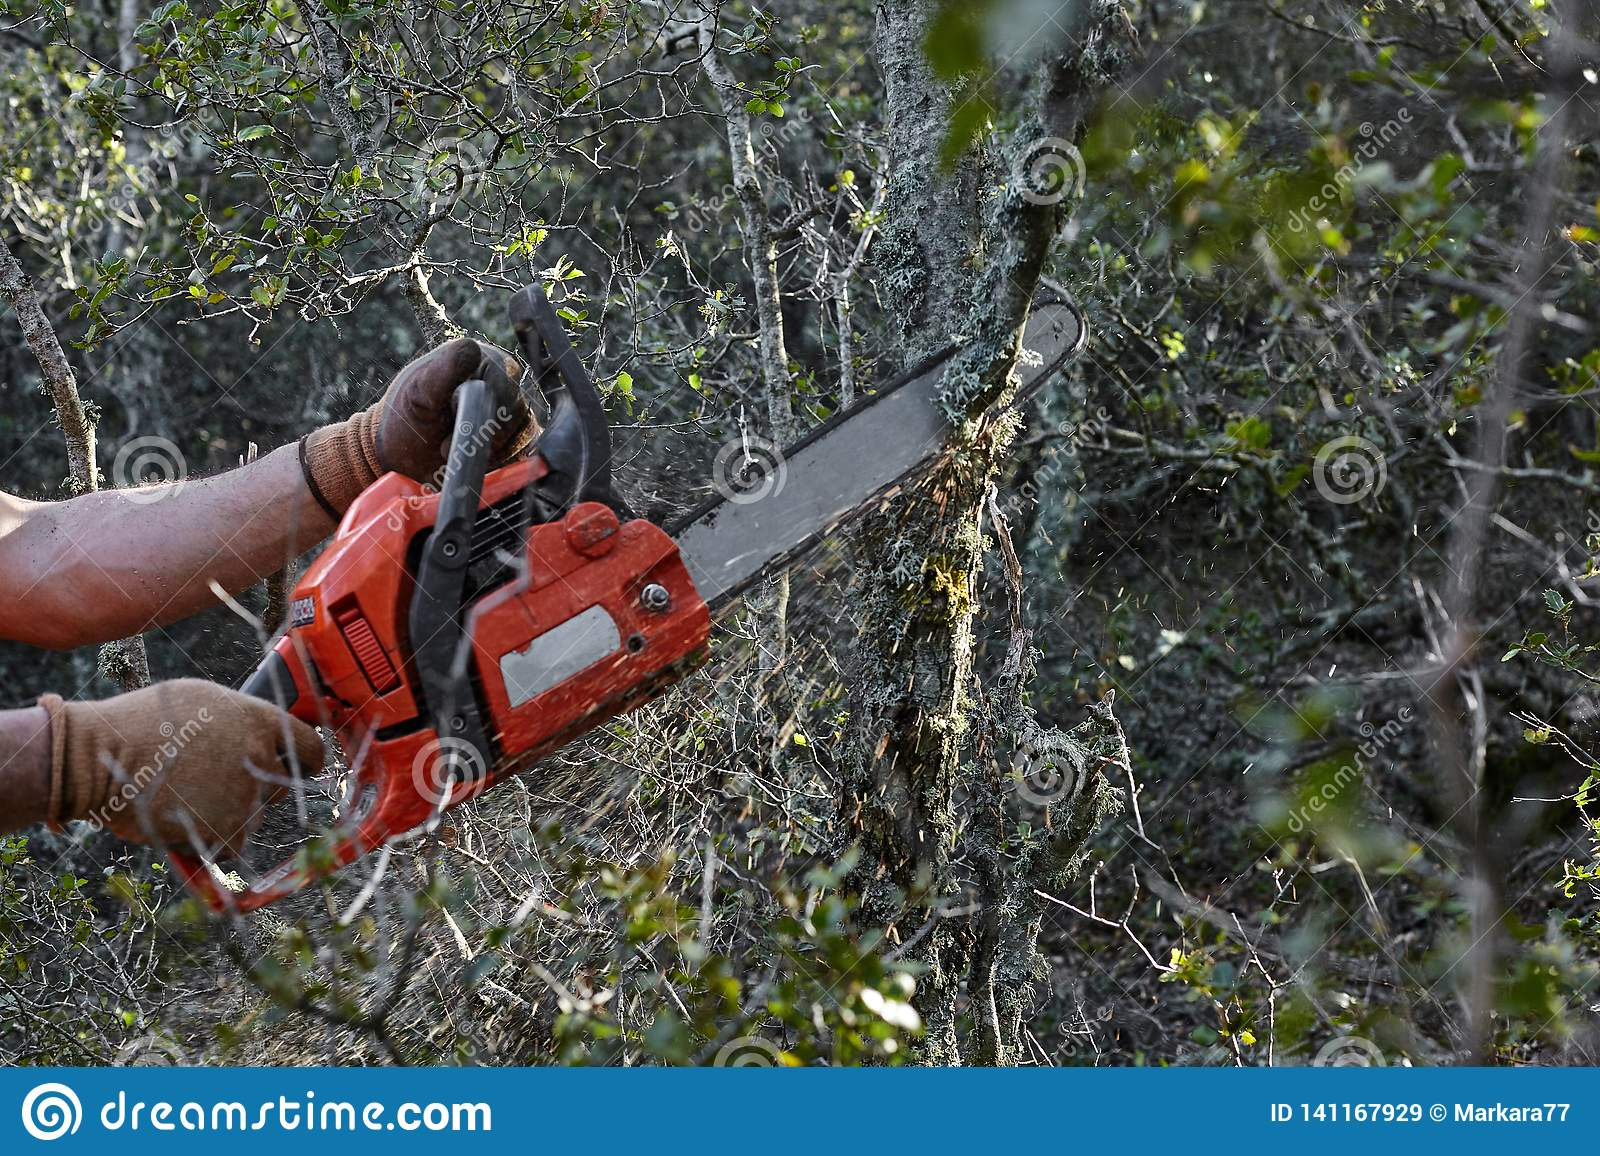 Man cutting trees using an electrical chainsaw in the forest